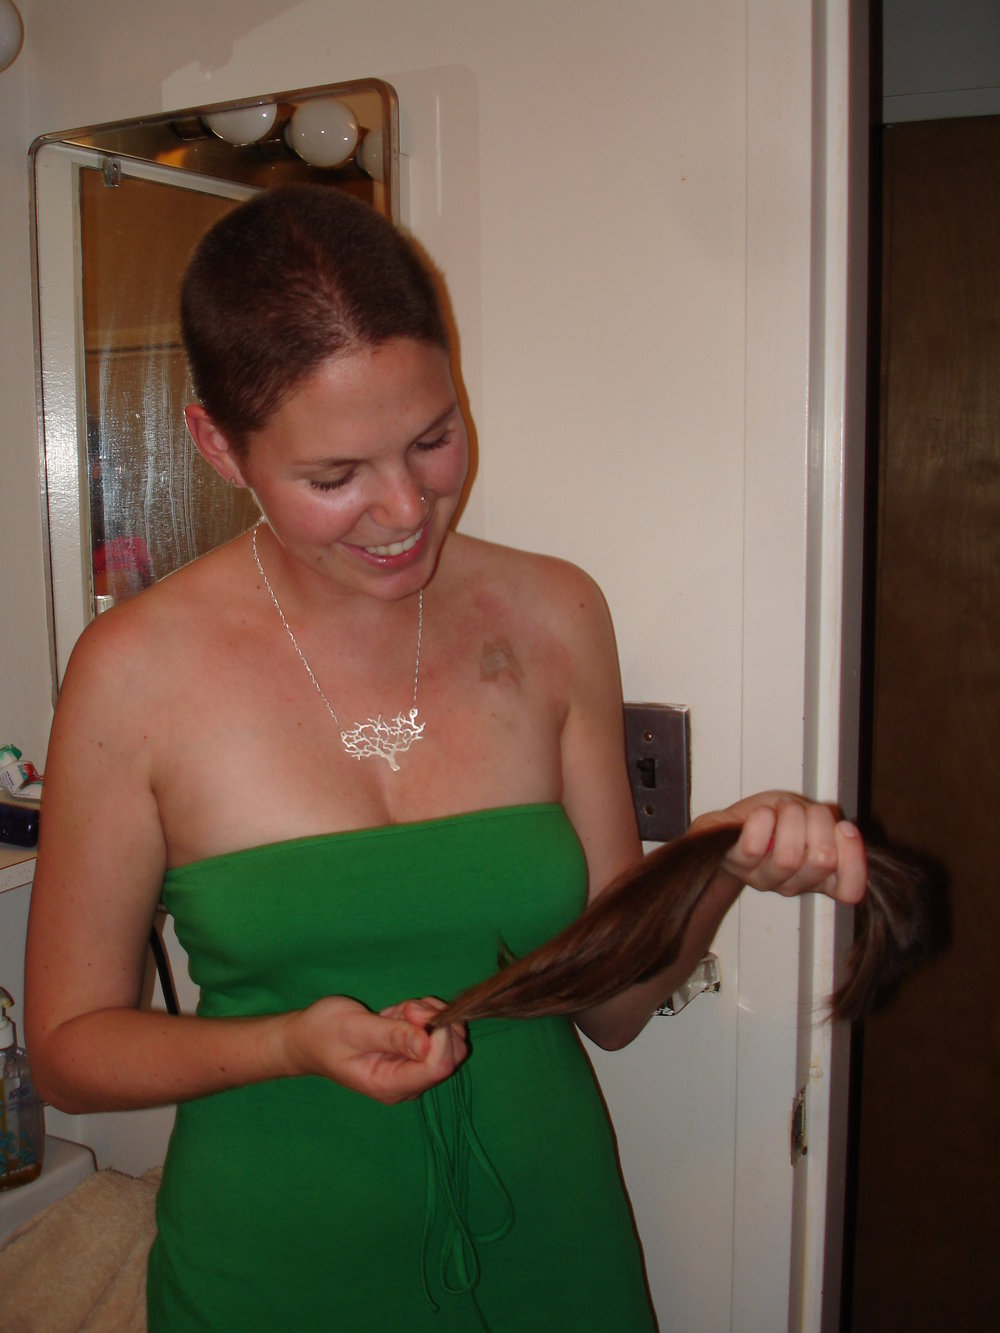 This was taken the night of my head-shaving party where I was surrounded by the sweetest friends. I had just had surgery to insert a chemotherapy port in my chest a few days earlier. I knew I would lose my hair as a result of the chemotherapy side effects and I knew I would feel more empowered if we celebrated the moment. I donated my hair afterwards.